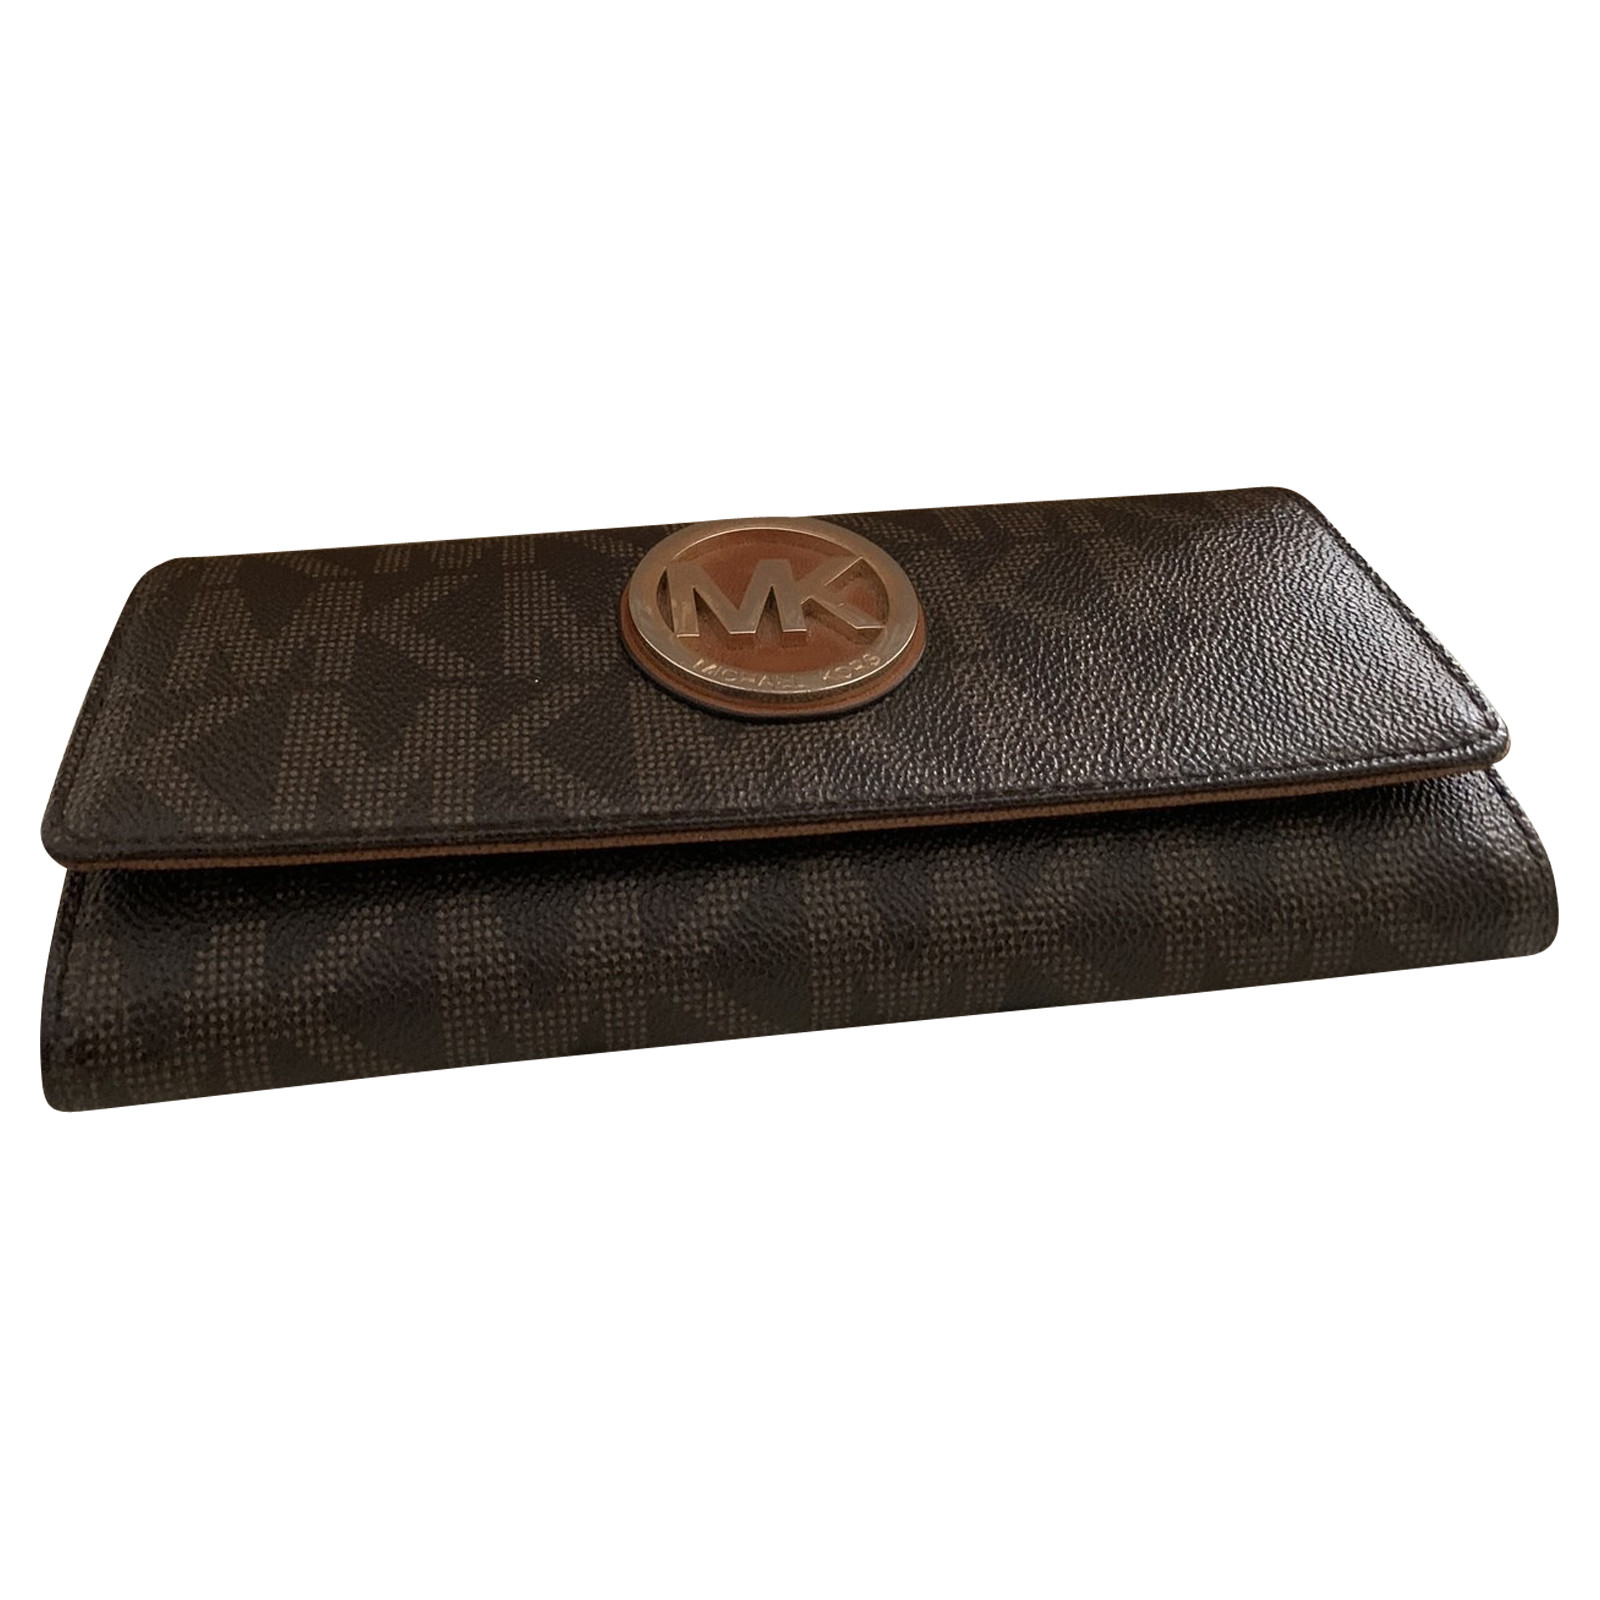 Michael Kors BagPurse Leather in Brown Second Hand